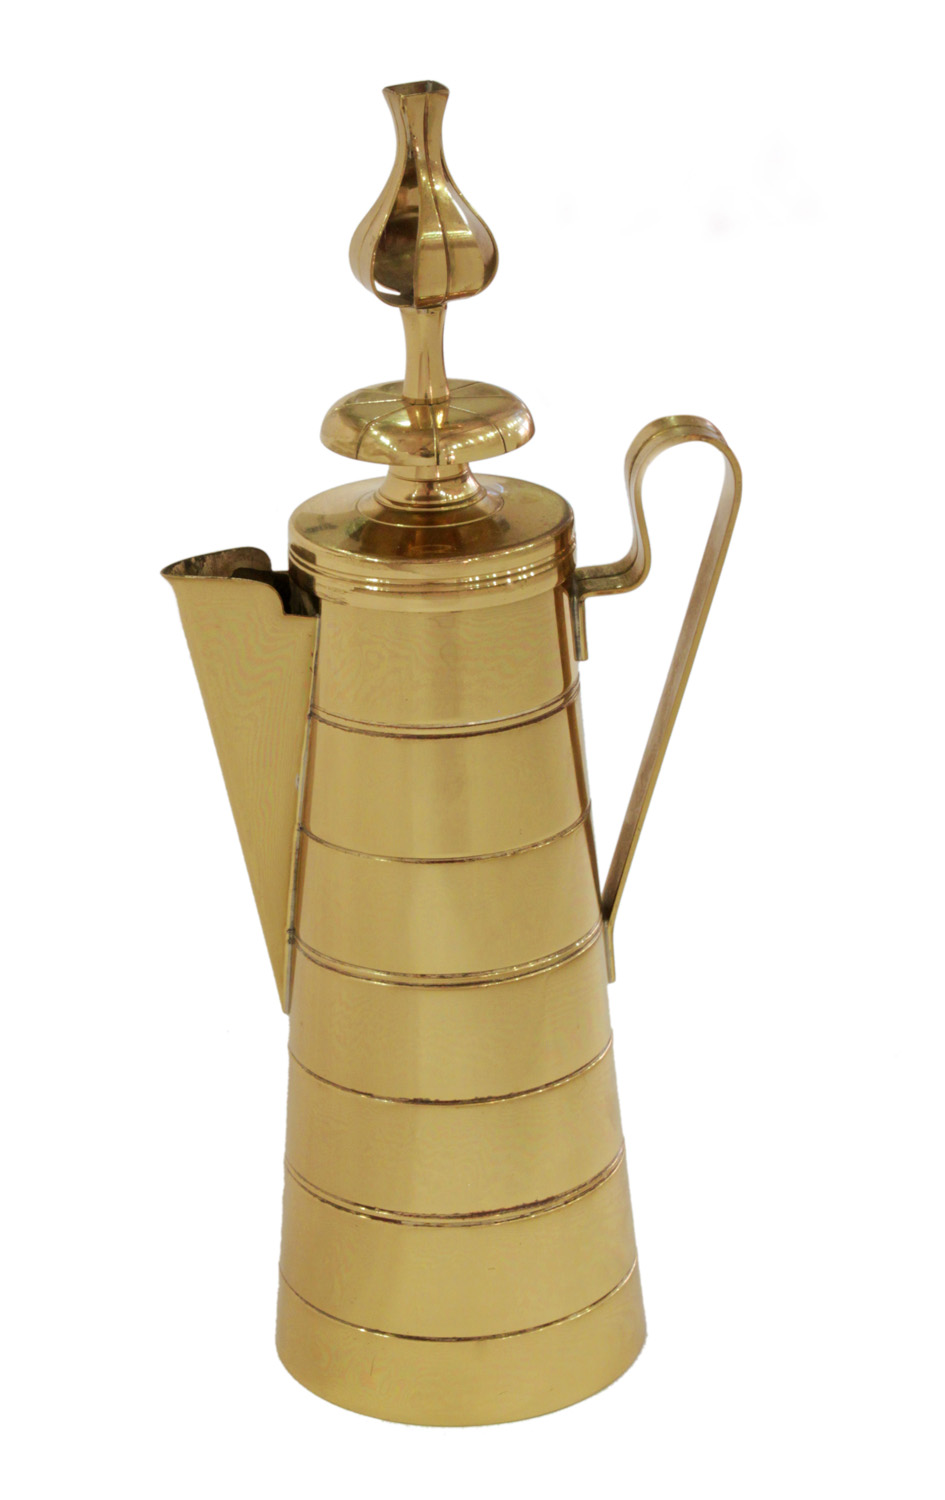 Parzinger 35 brass coffee & tray parzinger47 detail2 hires.jpg